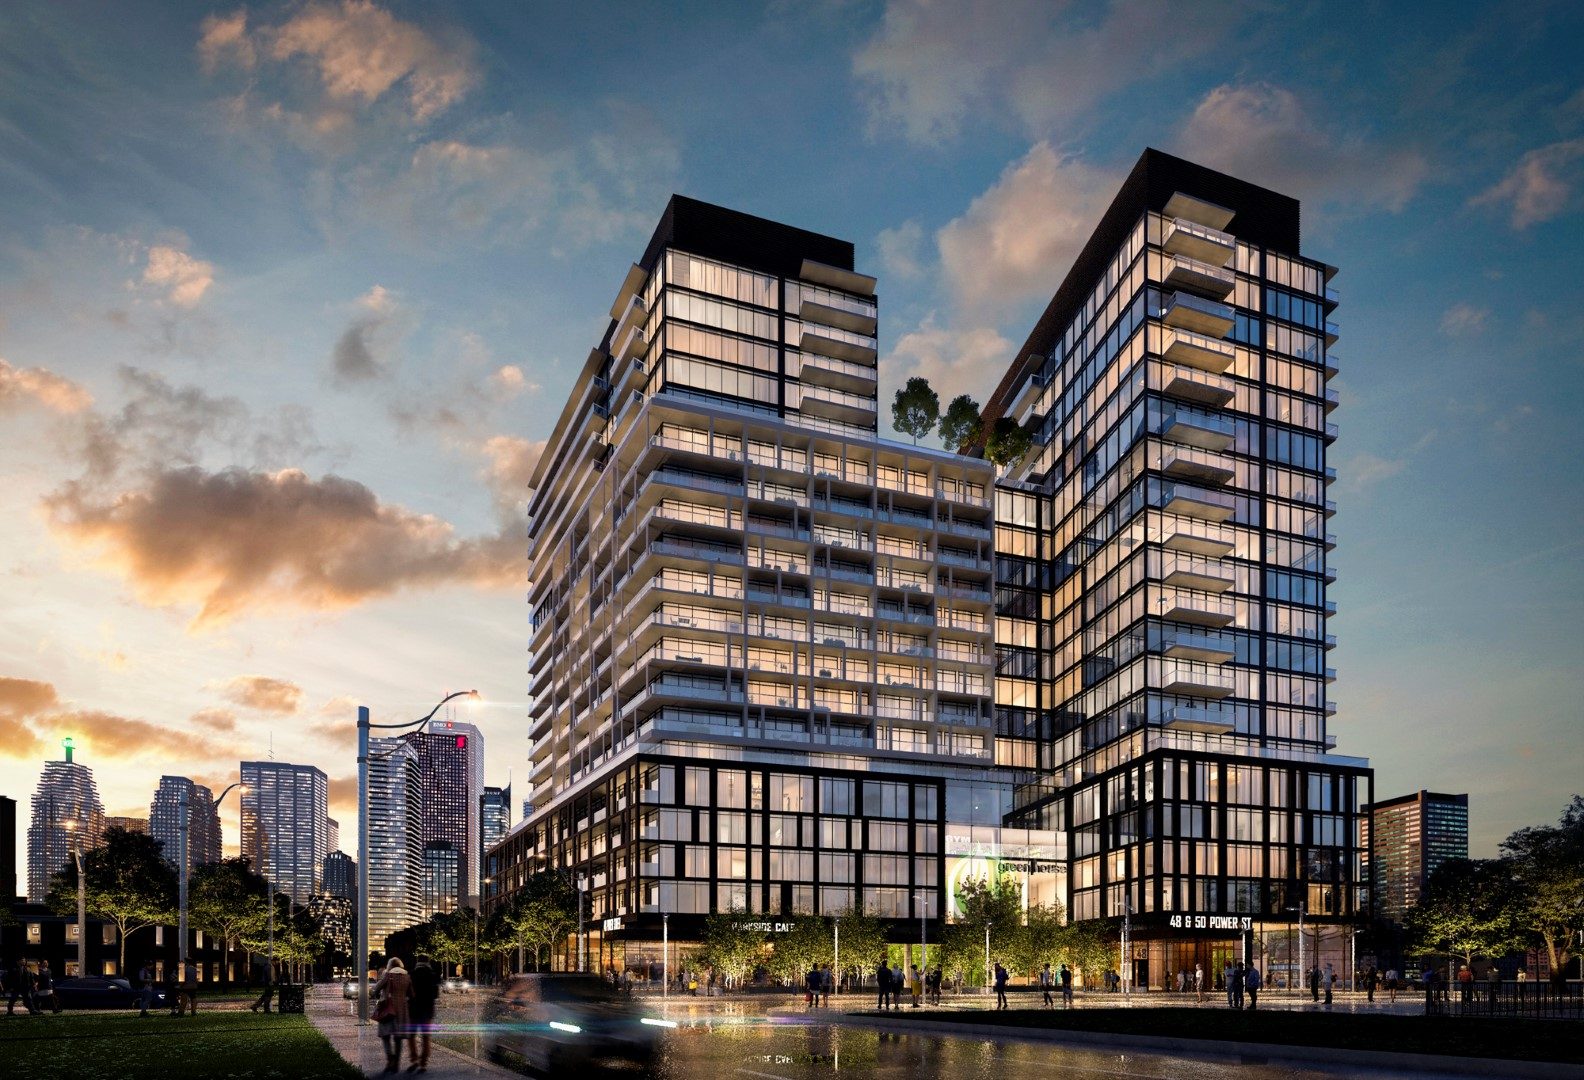 Home on Power + Andelaide - Parliament & Adelaide • Hullmark & Great Gulf DevelopmentsHome. Power + Adelaide will be the new landmark in Corktown as a 22-storey building with 532 condominium units and 73,000 sf of retail space.